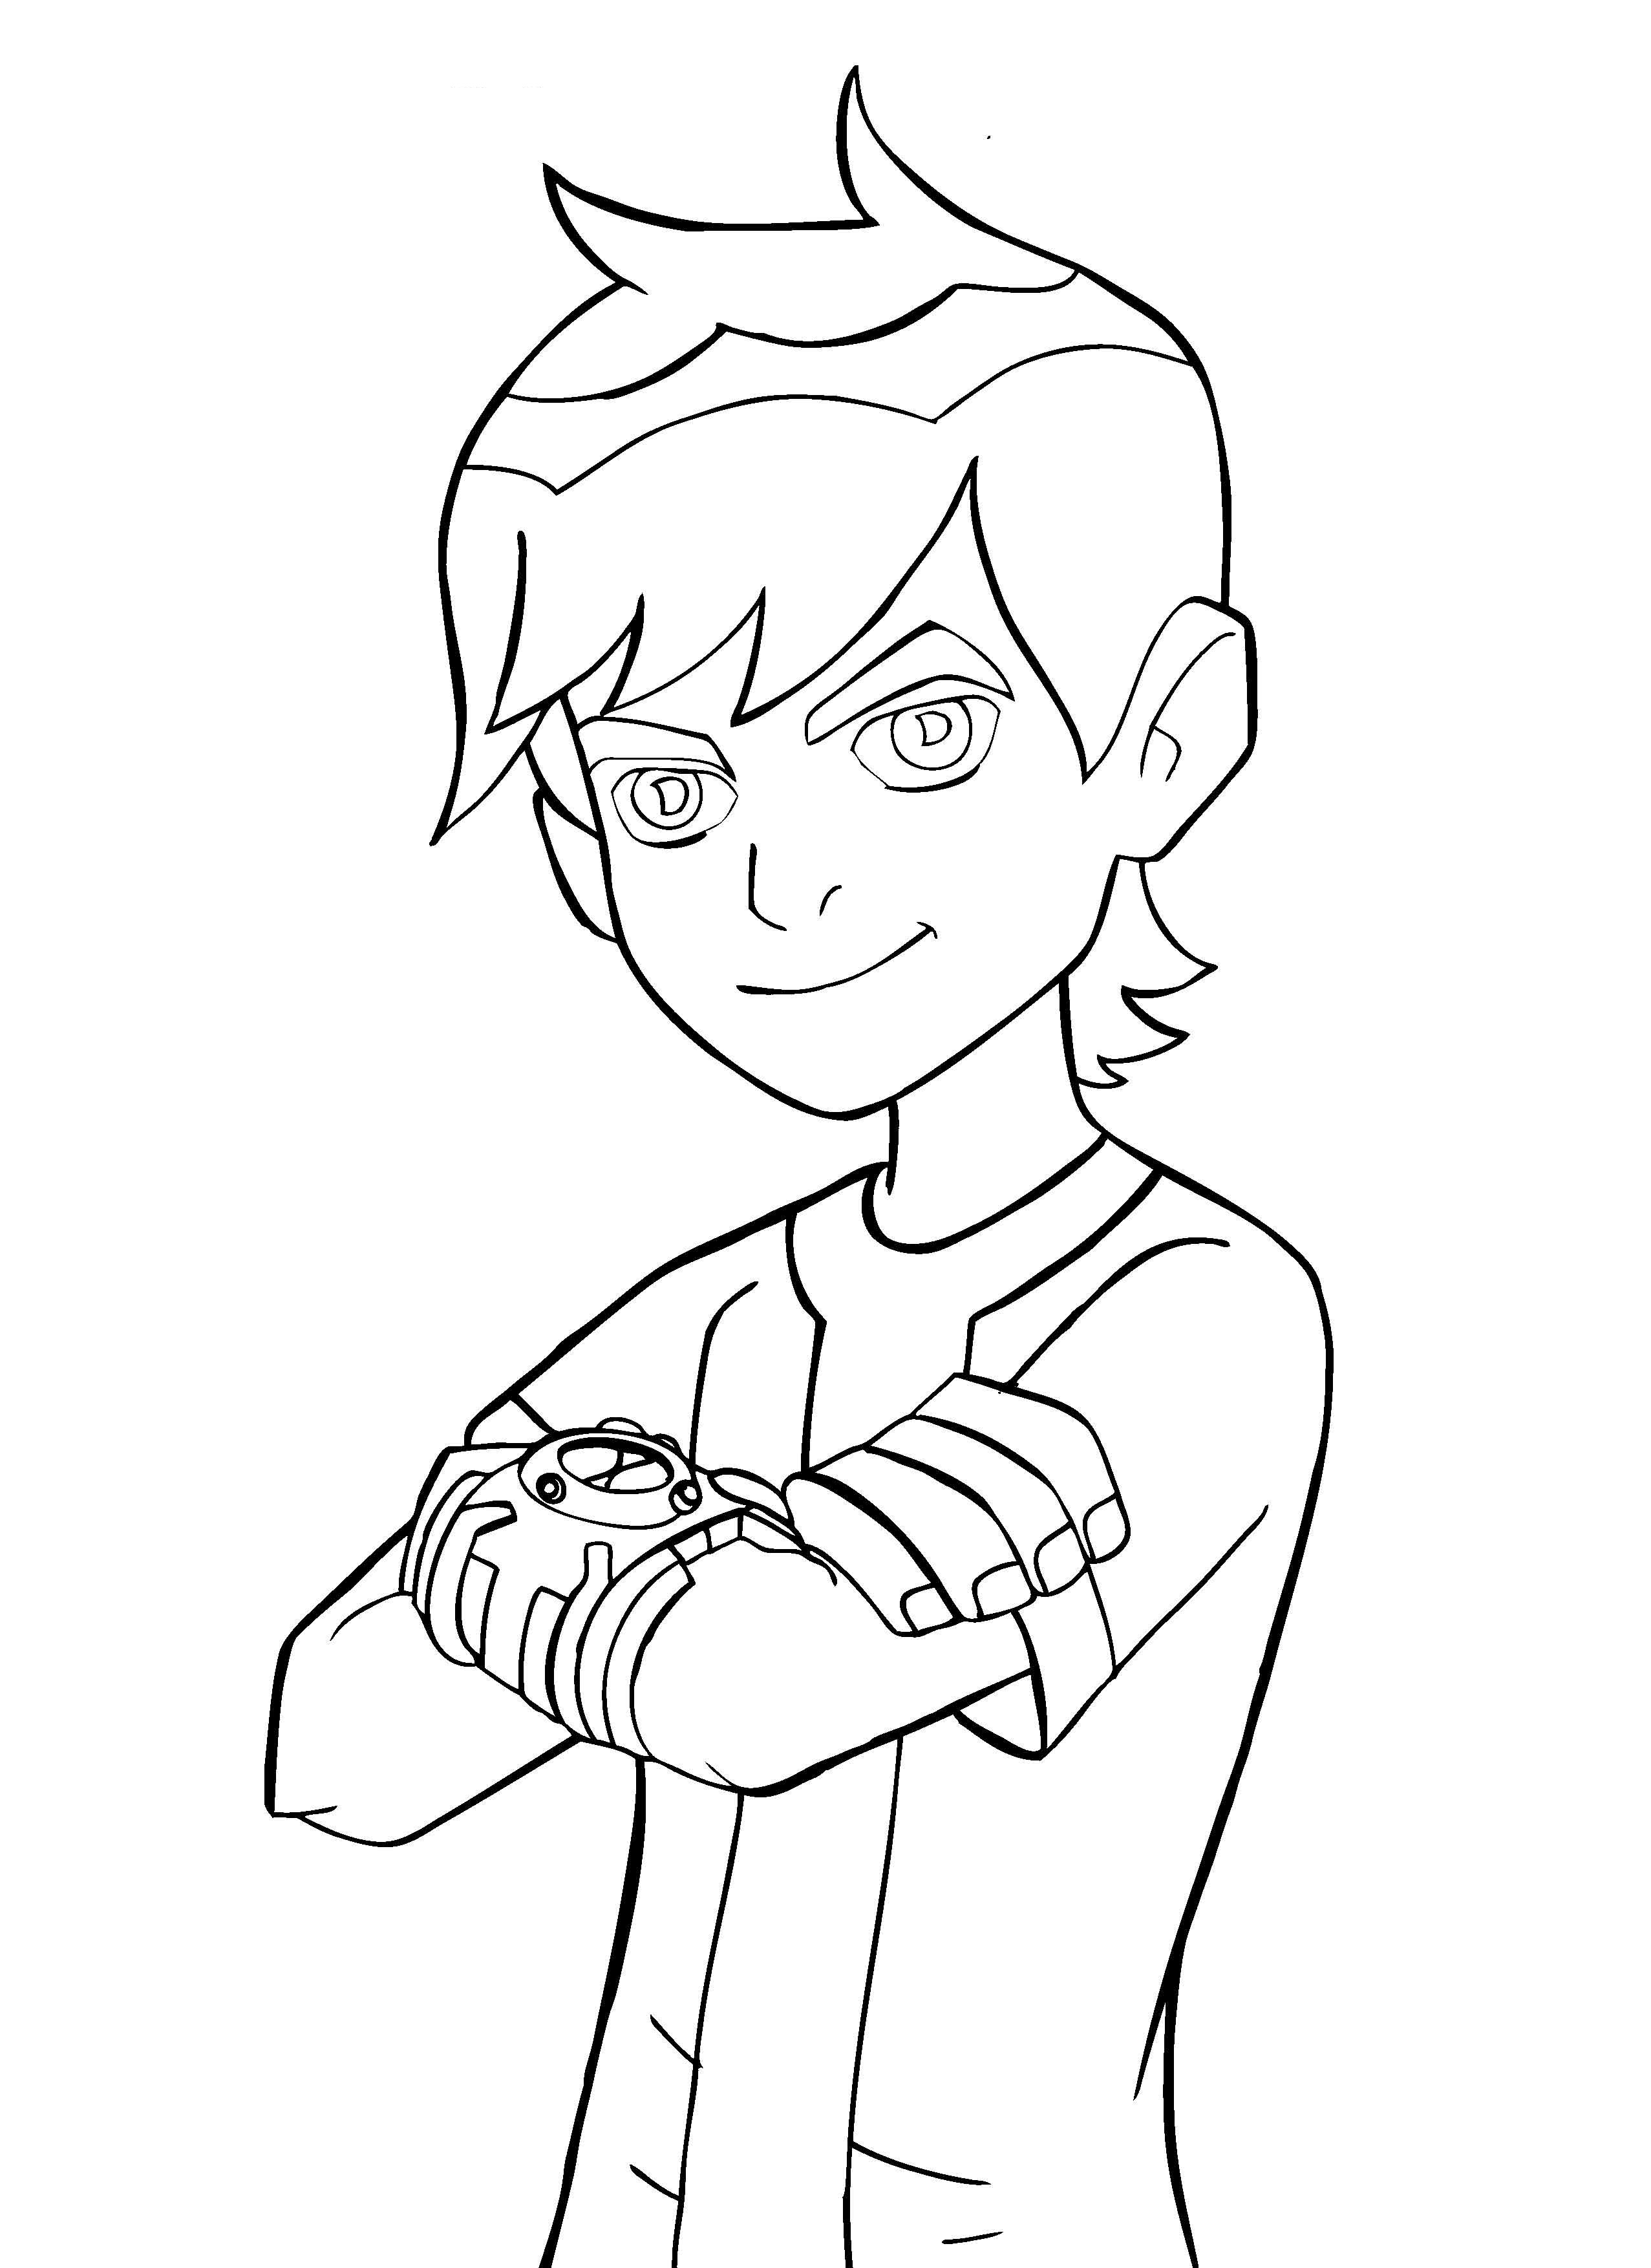 Uncategorized Coloring Pages Ben 10 ben 10 coloring pages drawing inspiration home inspiration